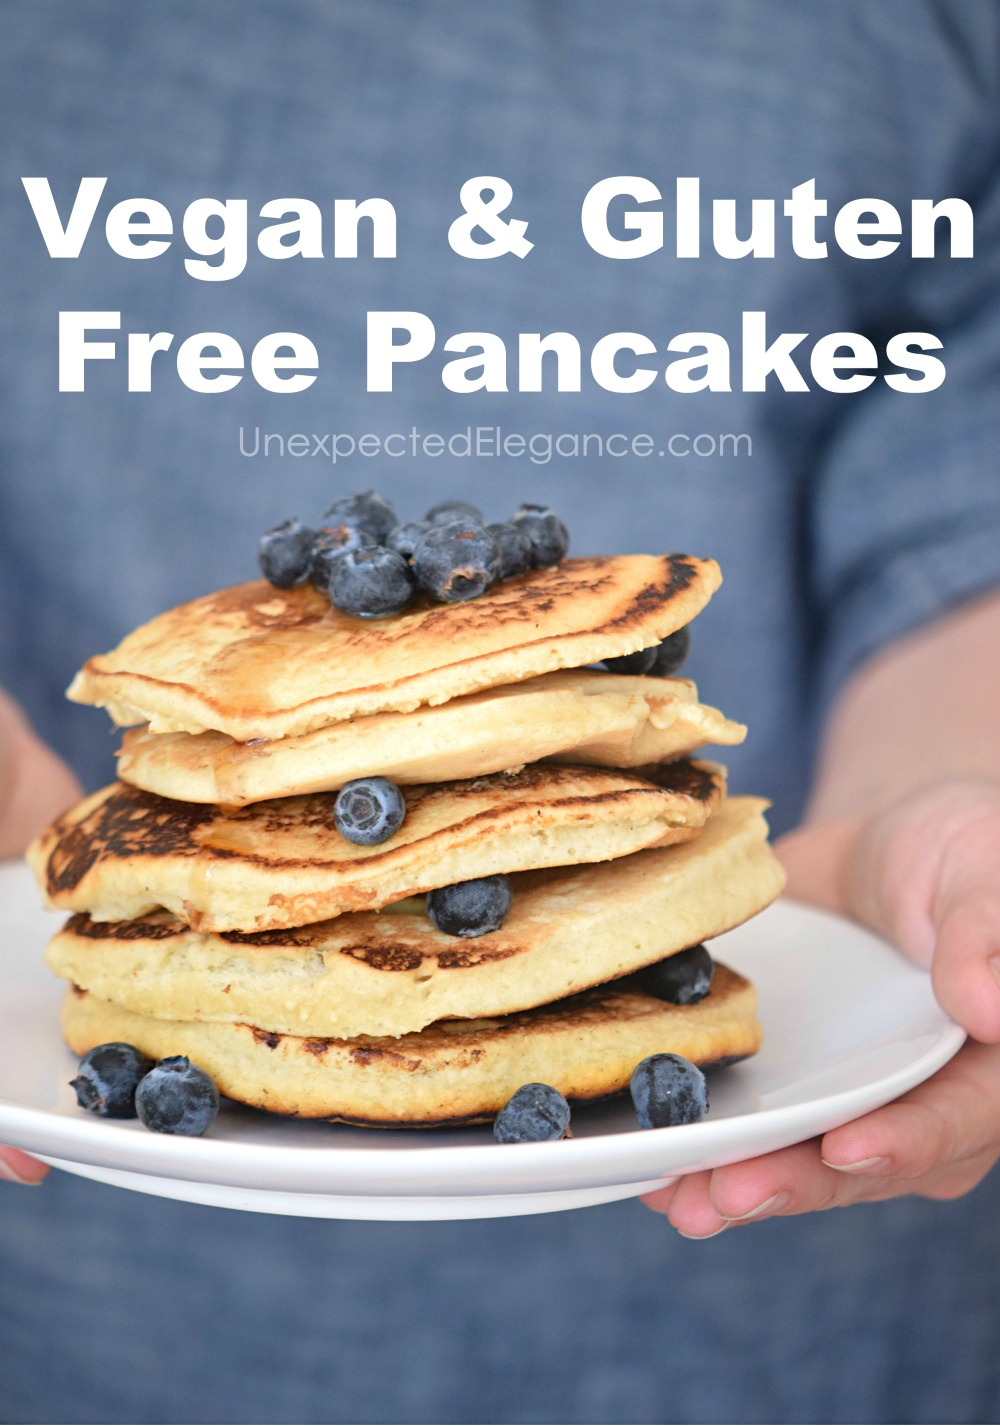 These vegan and gluten free pancakes are so delicious your family will love them. They are perfect for a special breakfast! Modify them to make paleo.